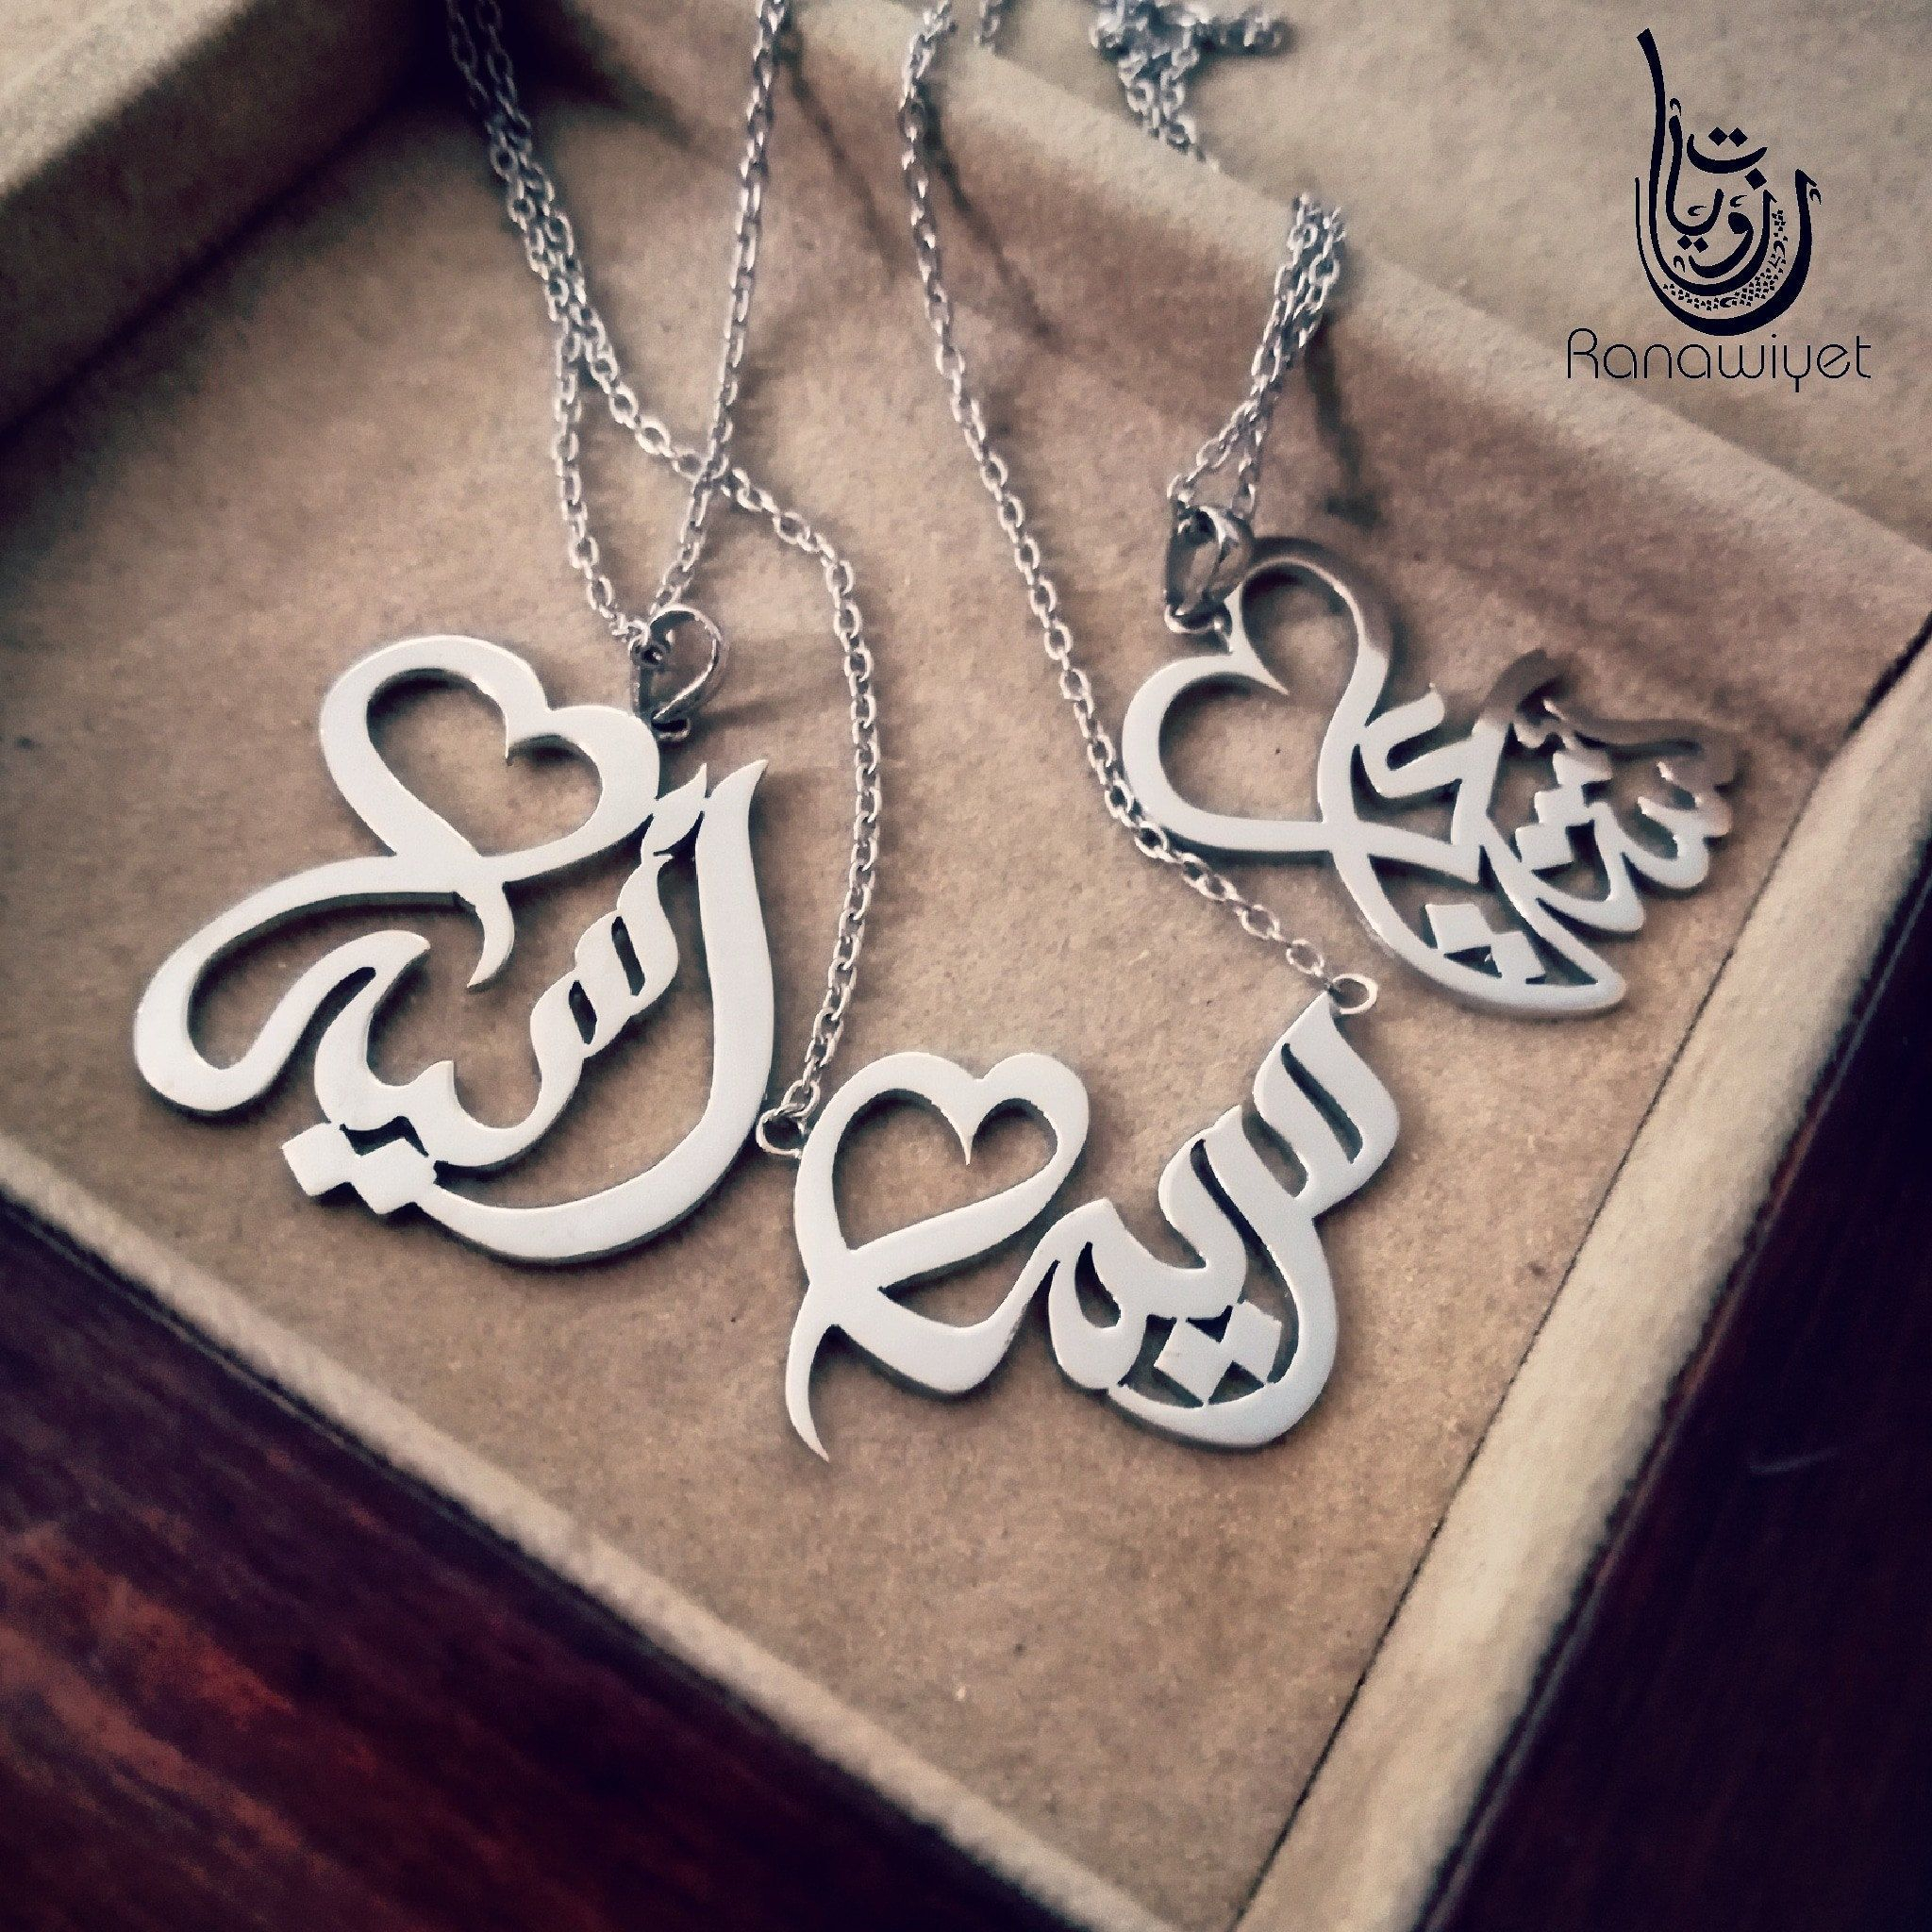 Original Arabic Calligraffiti Name Necklace, Free Style Arabic Pertaining To 2019 Crown & Interwined Hearts Pendant Necklaces (Gallery 19 of 25)